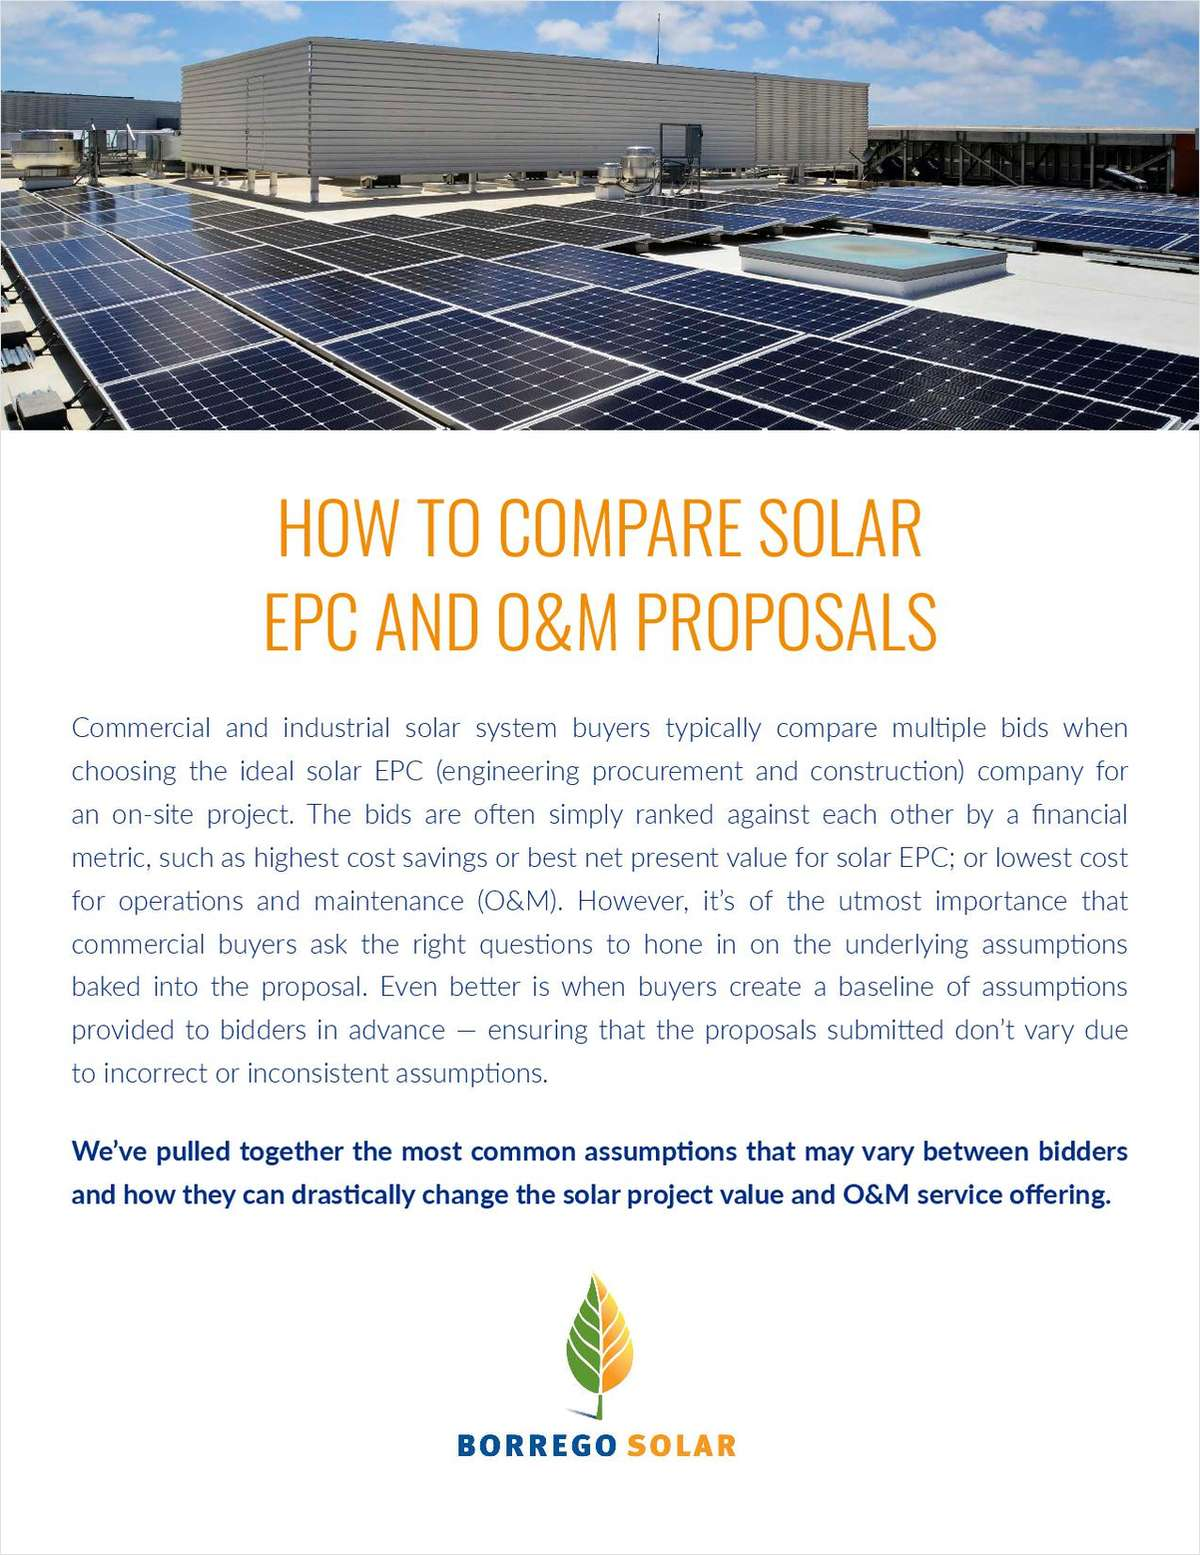 How To Compare Solar EPC and O&M Proposals